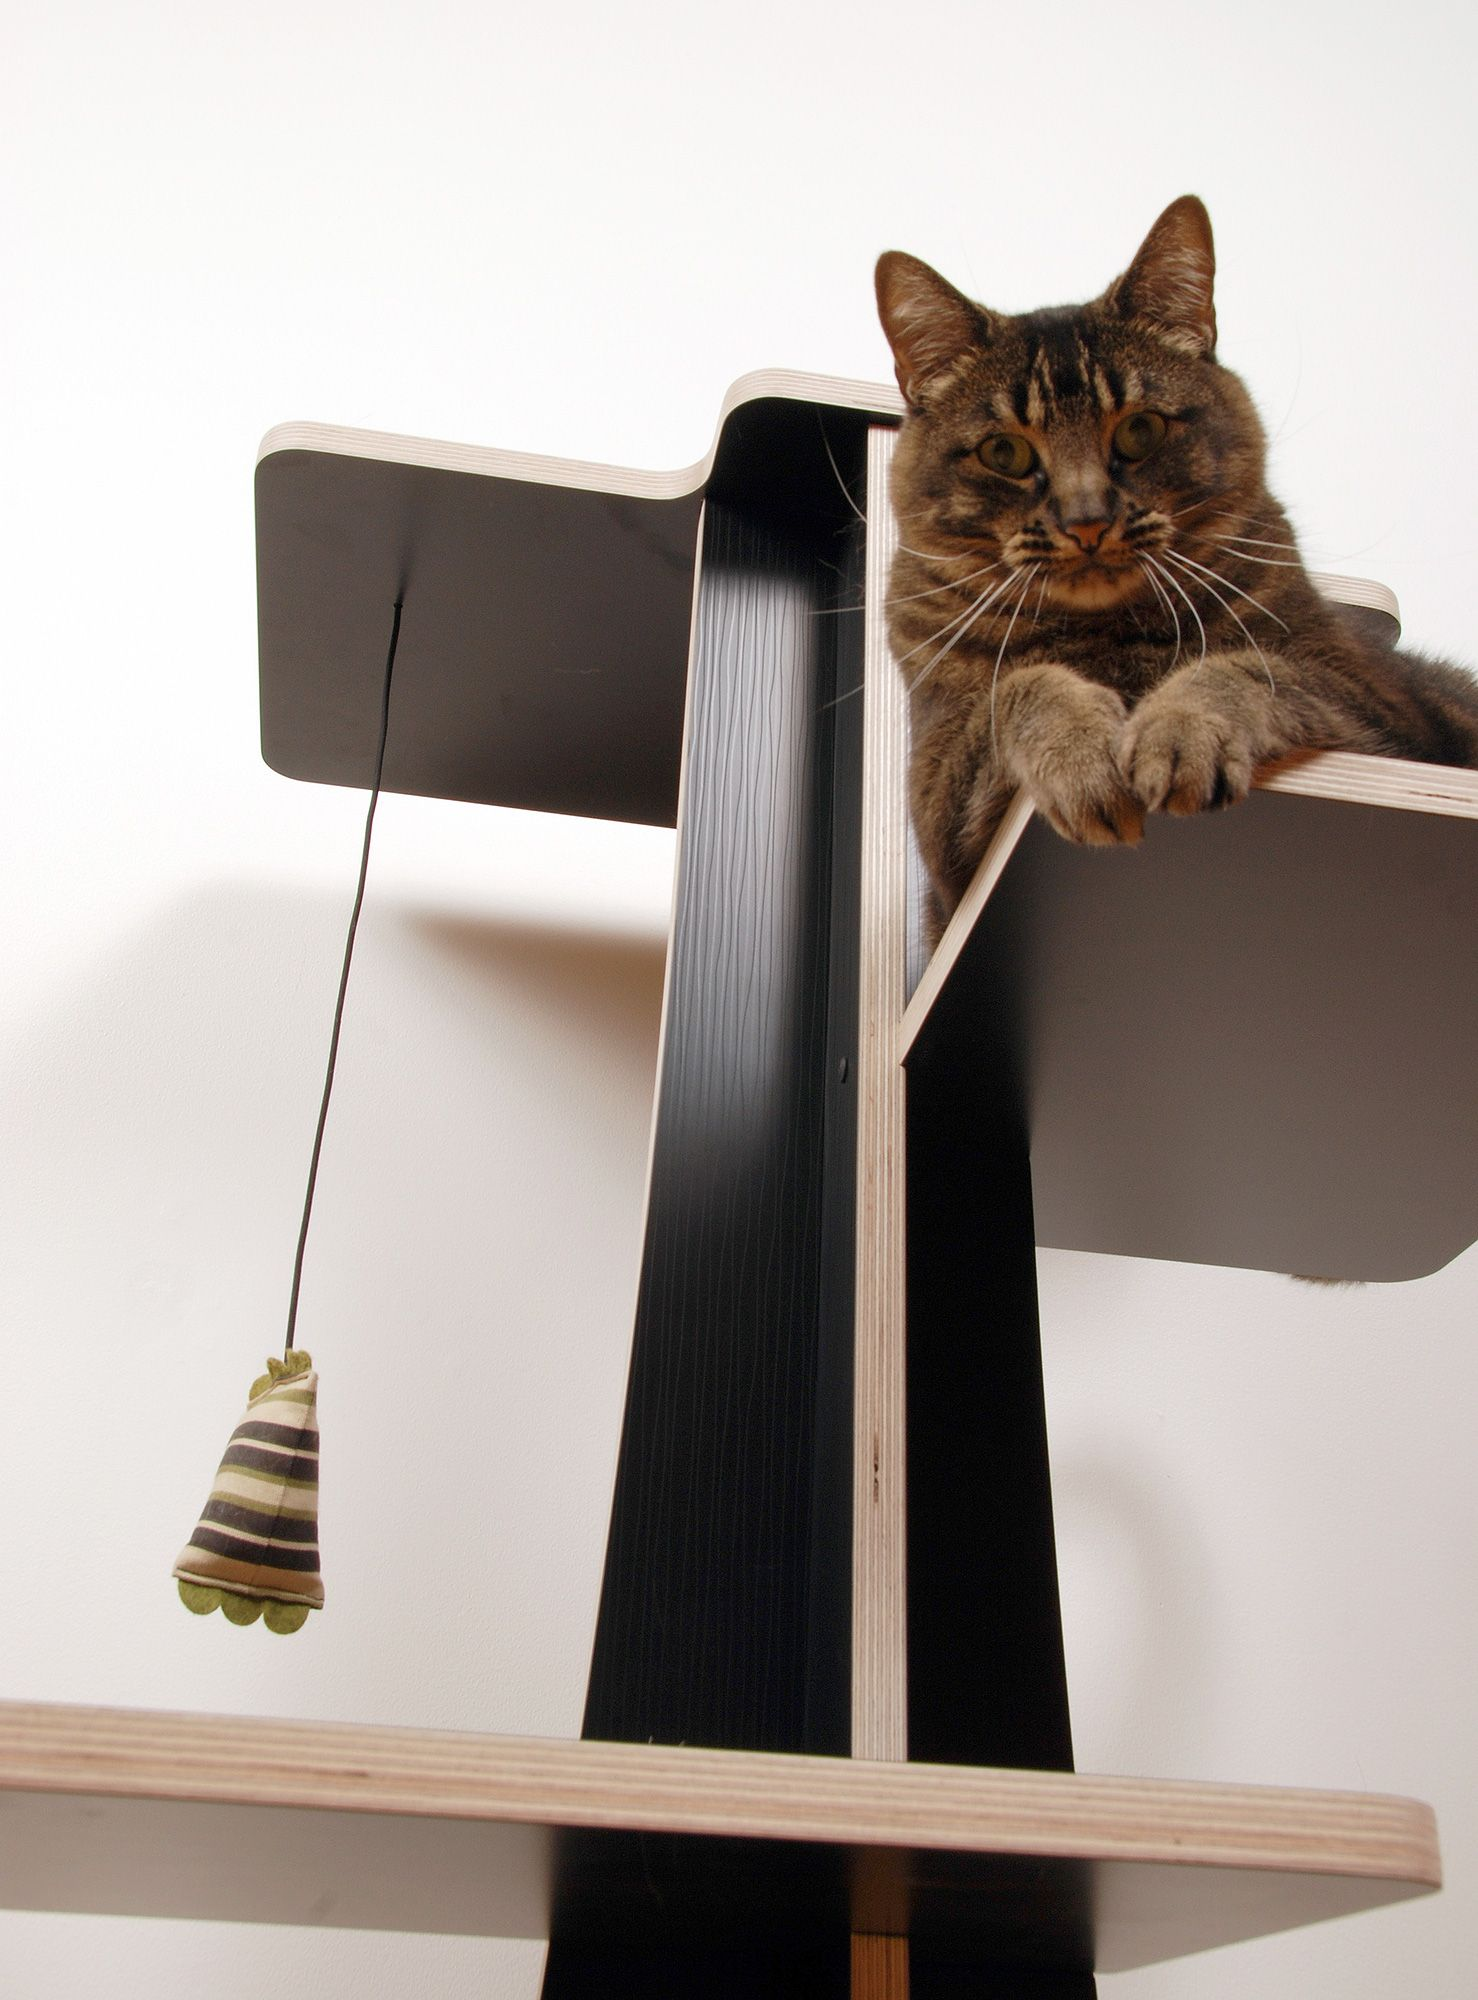 Acacia cat tree in Laminated Birch (Black) with Olive Toy